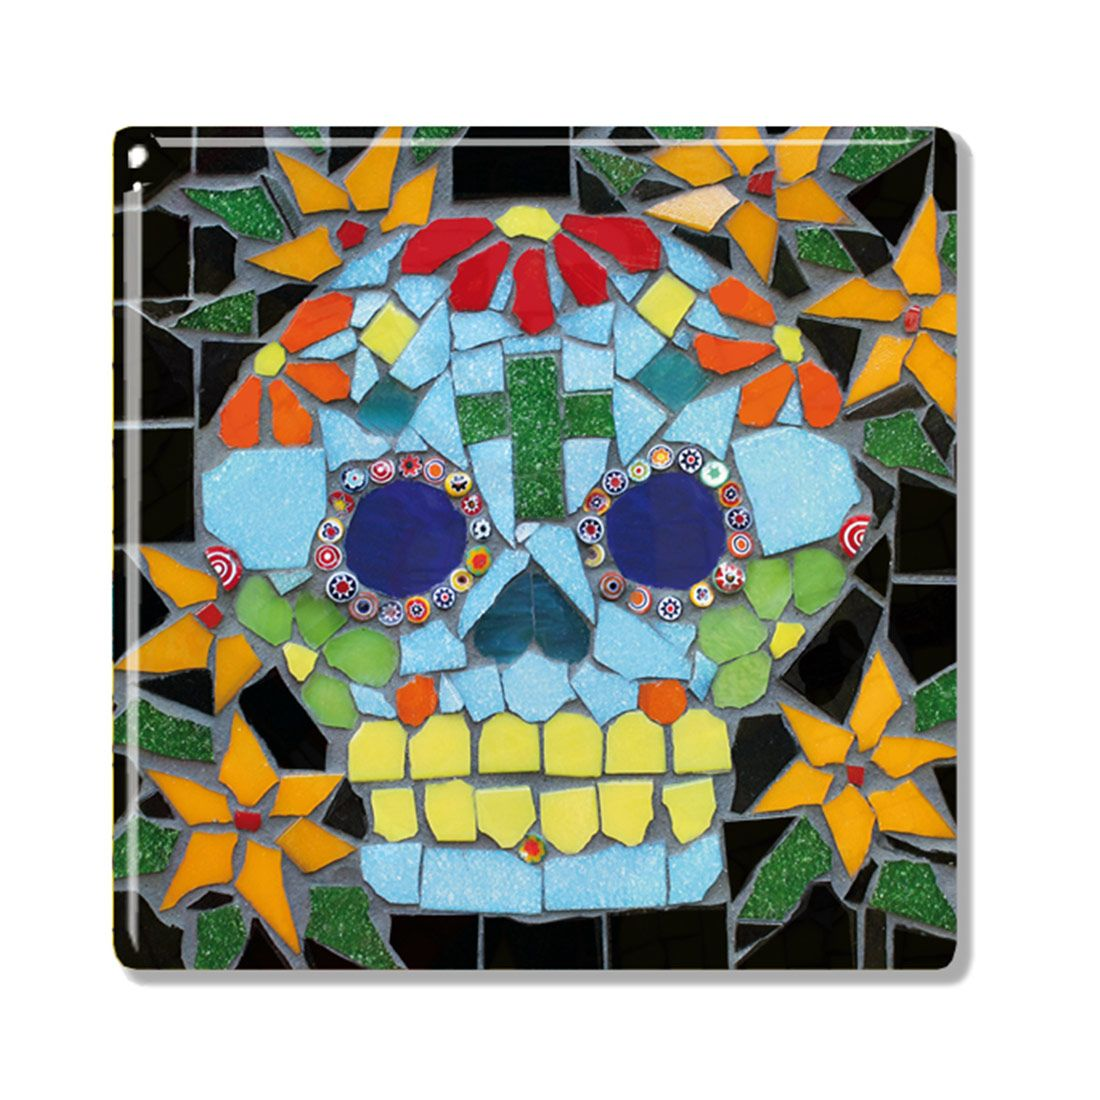 Blue day of the dead mexican mosaic style candy skull ceramic blue day of the dead mexican mosaic style candy skull ceramic coaster ceramic tile dailygadgetfo Choice Image